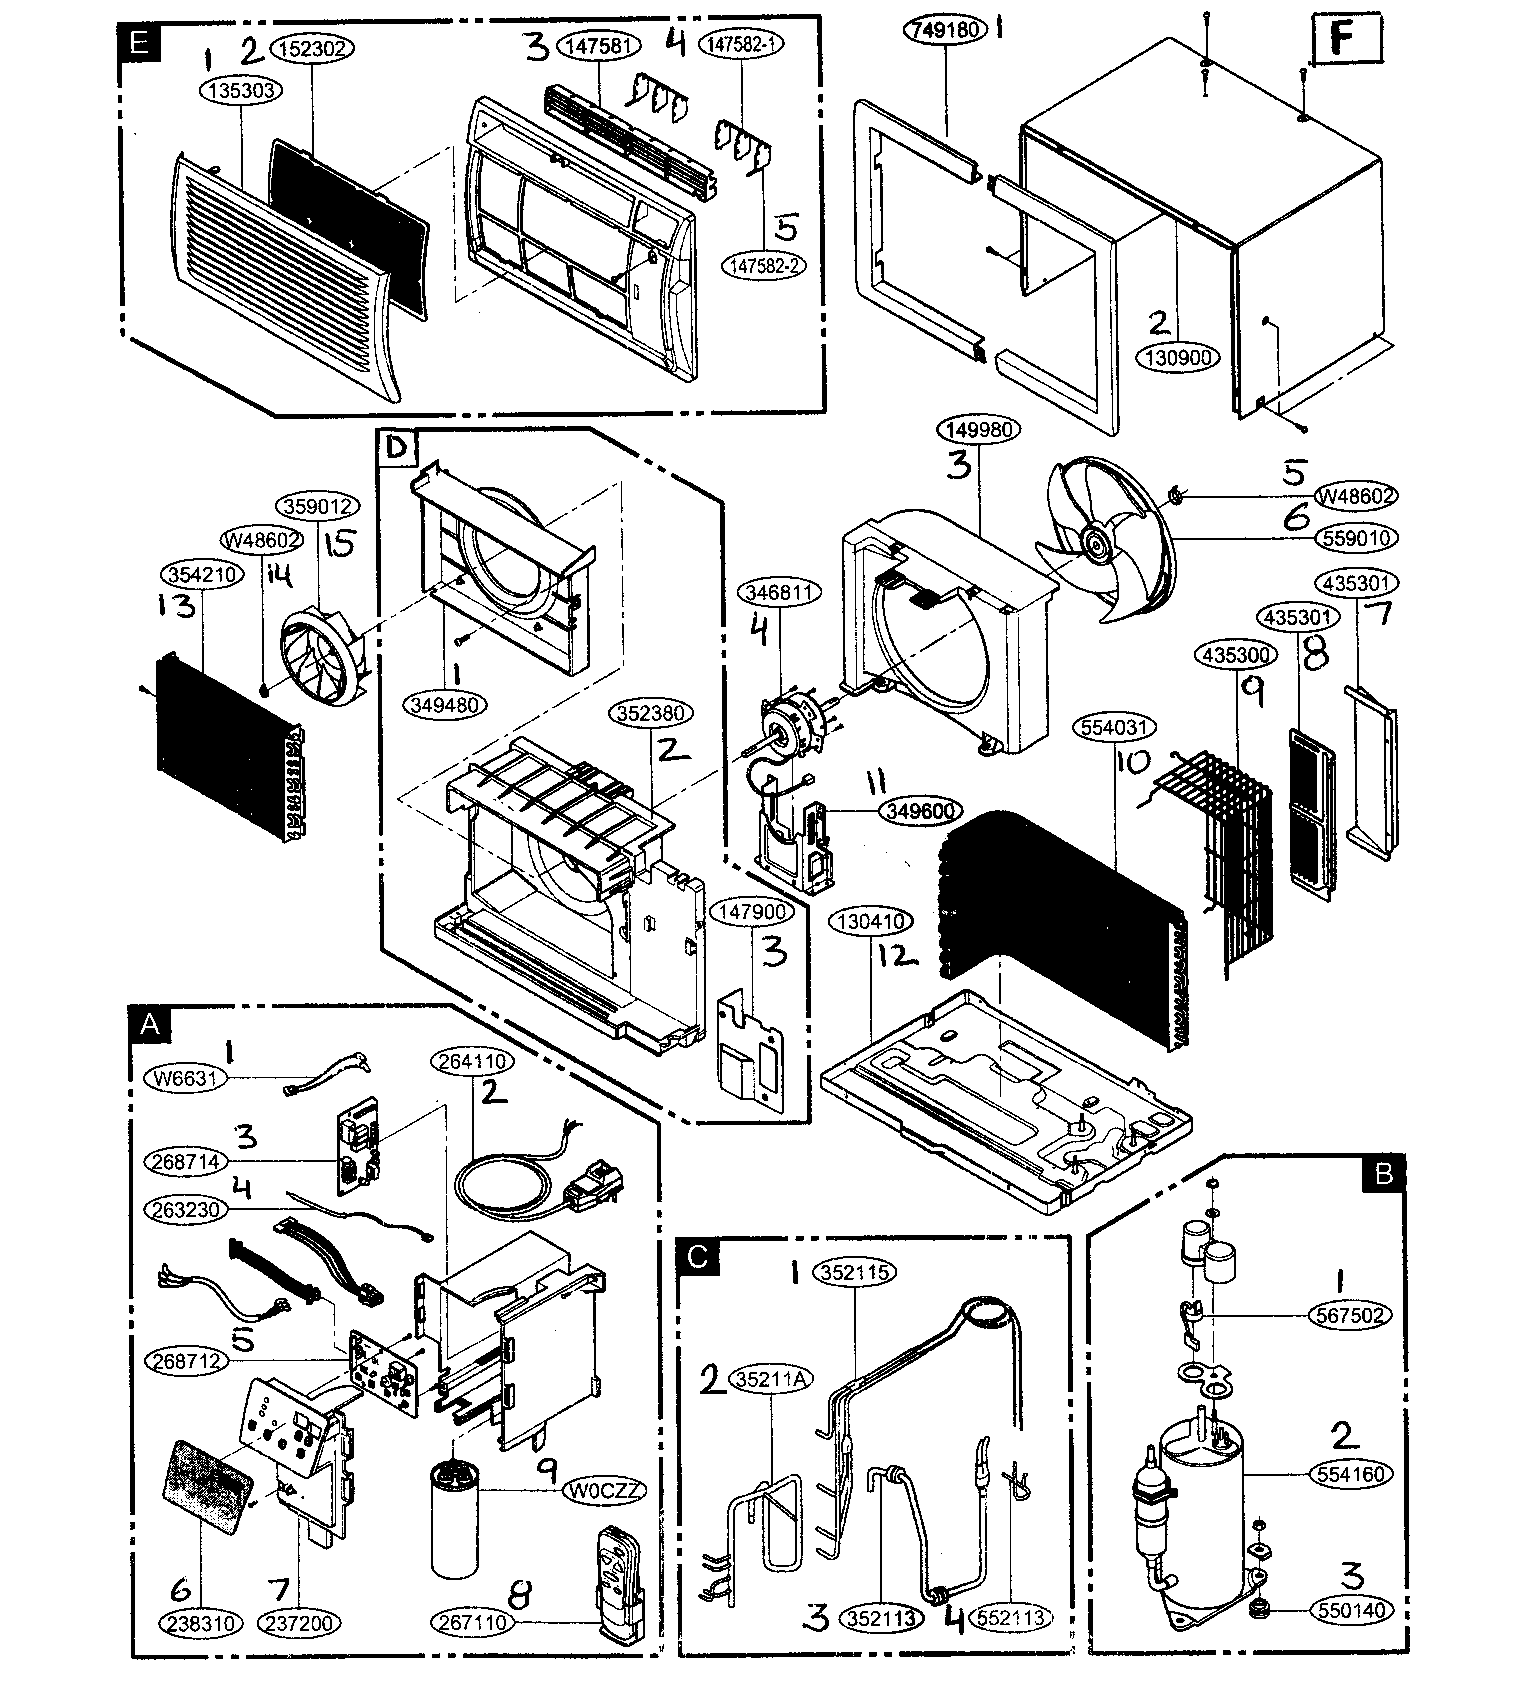 Amazing haier air handler wiring diagrams contemporary the best conditioner air conditioning wiri… 1997 lincoln